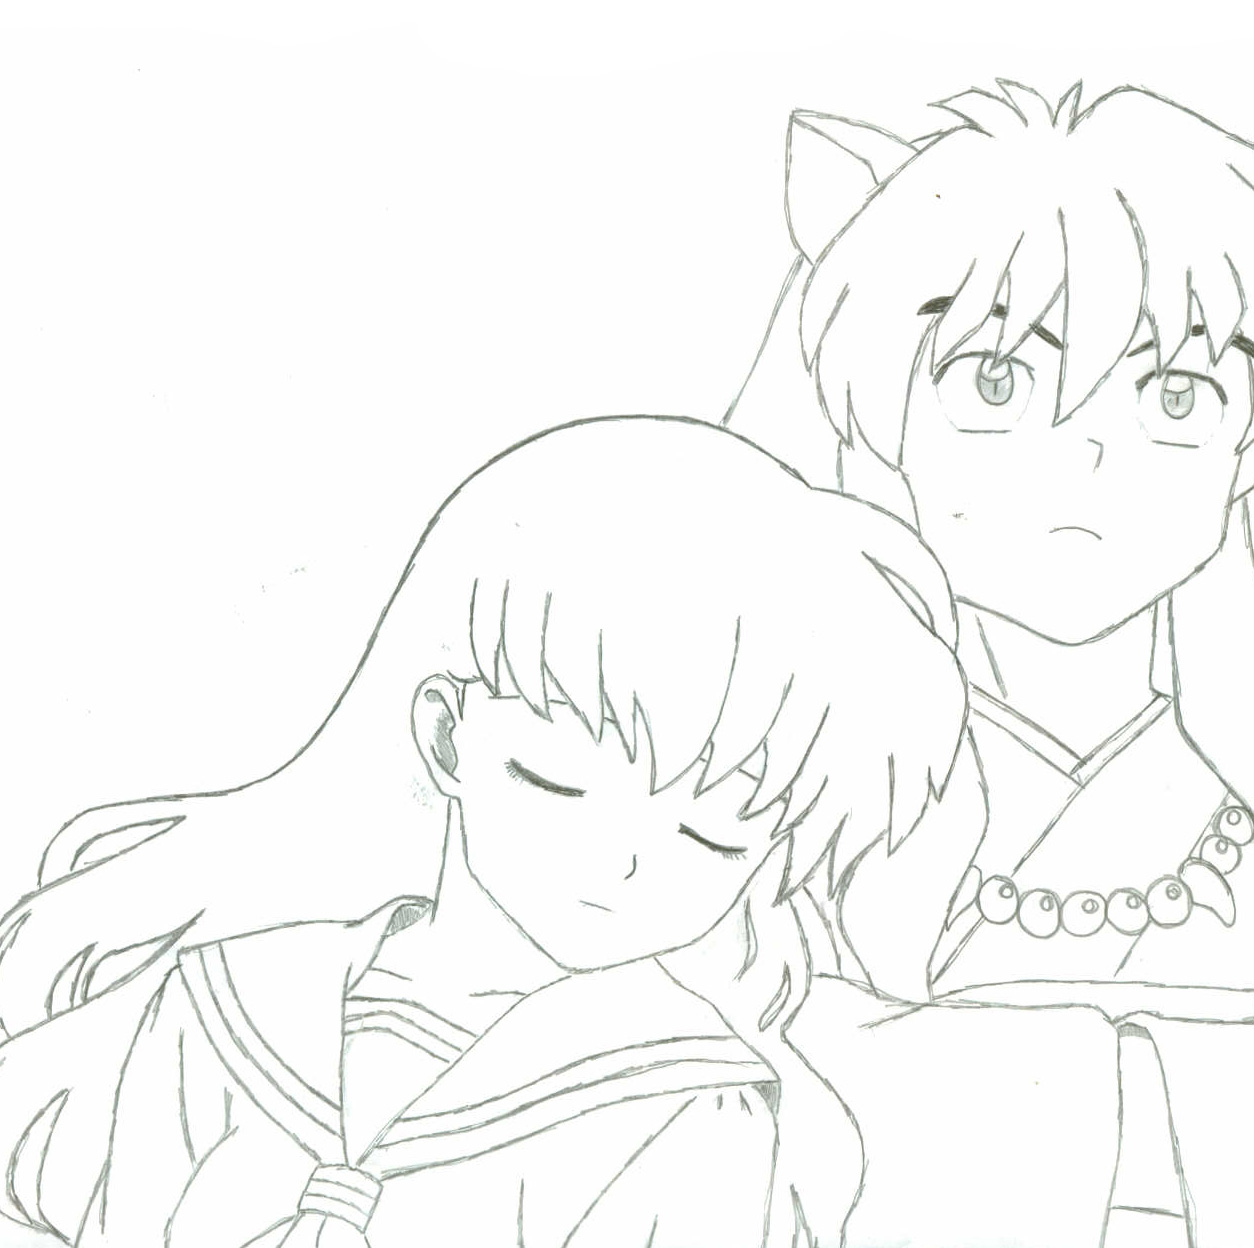 Free Coloring Pages Of Human Inuyasha 19548 | Coloring pages, Free ... | 1248x1254